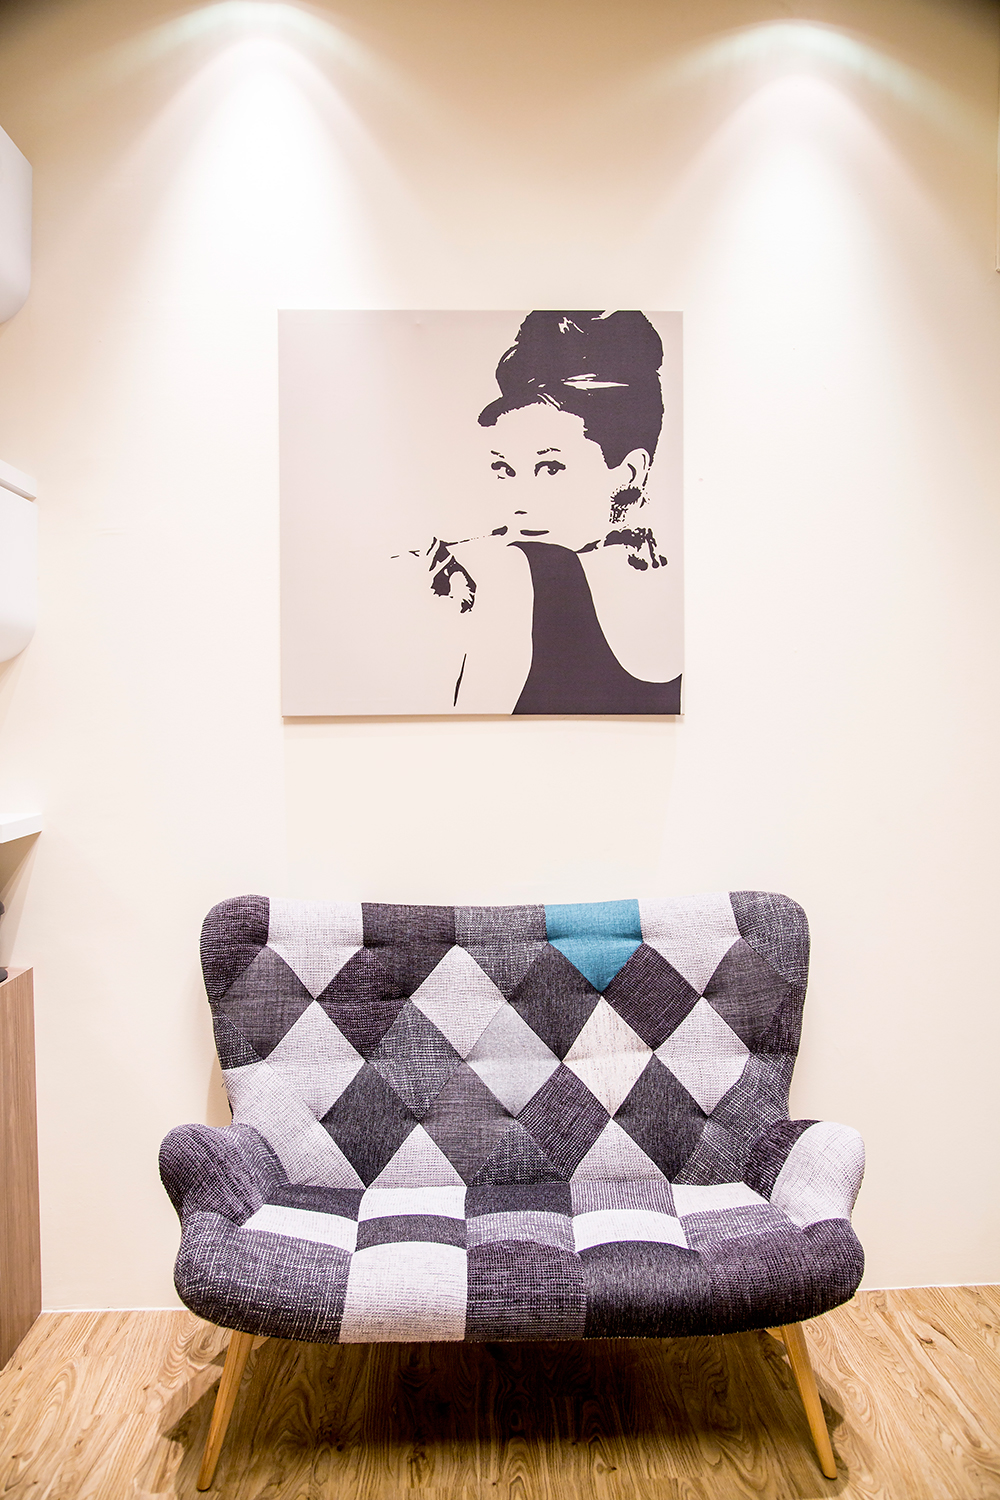 Crystal Phuong- Singapore Beauty Blog- Bejeweled Facial Spa Interior 2